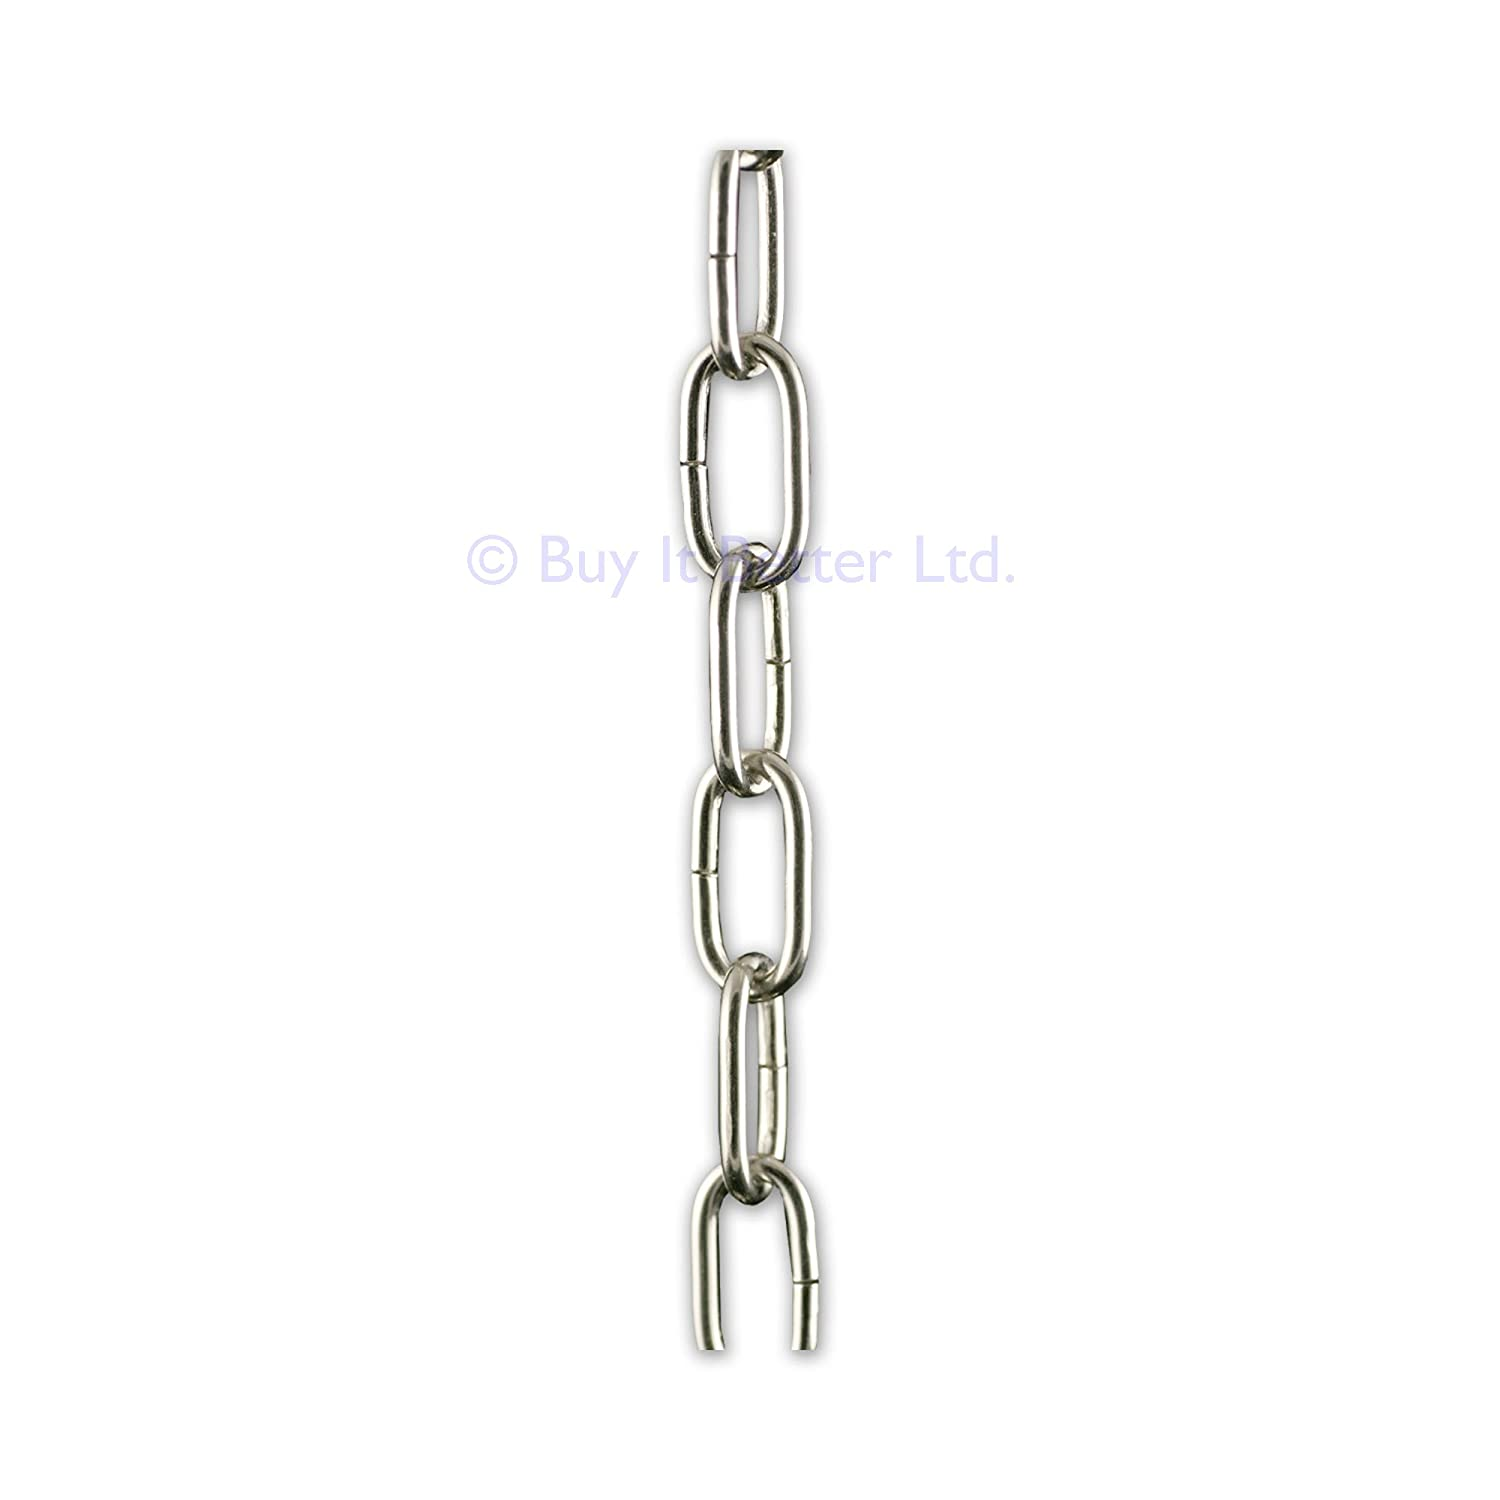 2m Chrome Open Link Chain - For Chandelier & Lighting - Small - 20X10MM - Ch-1A Buy It Better